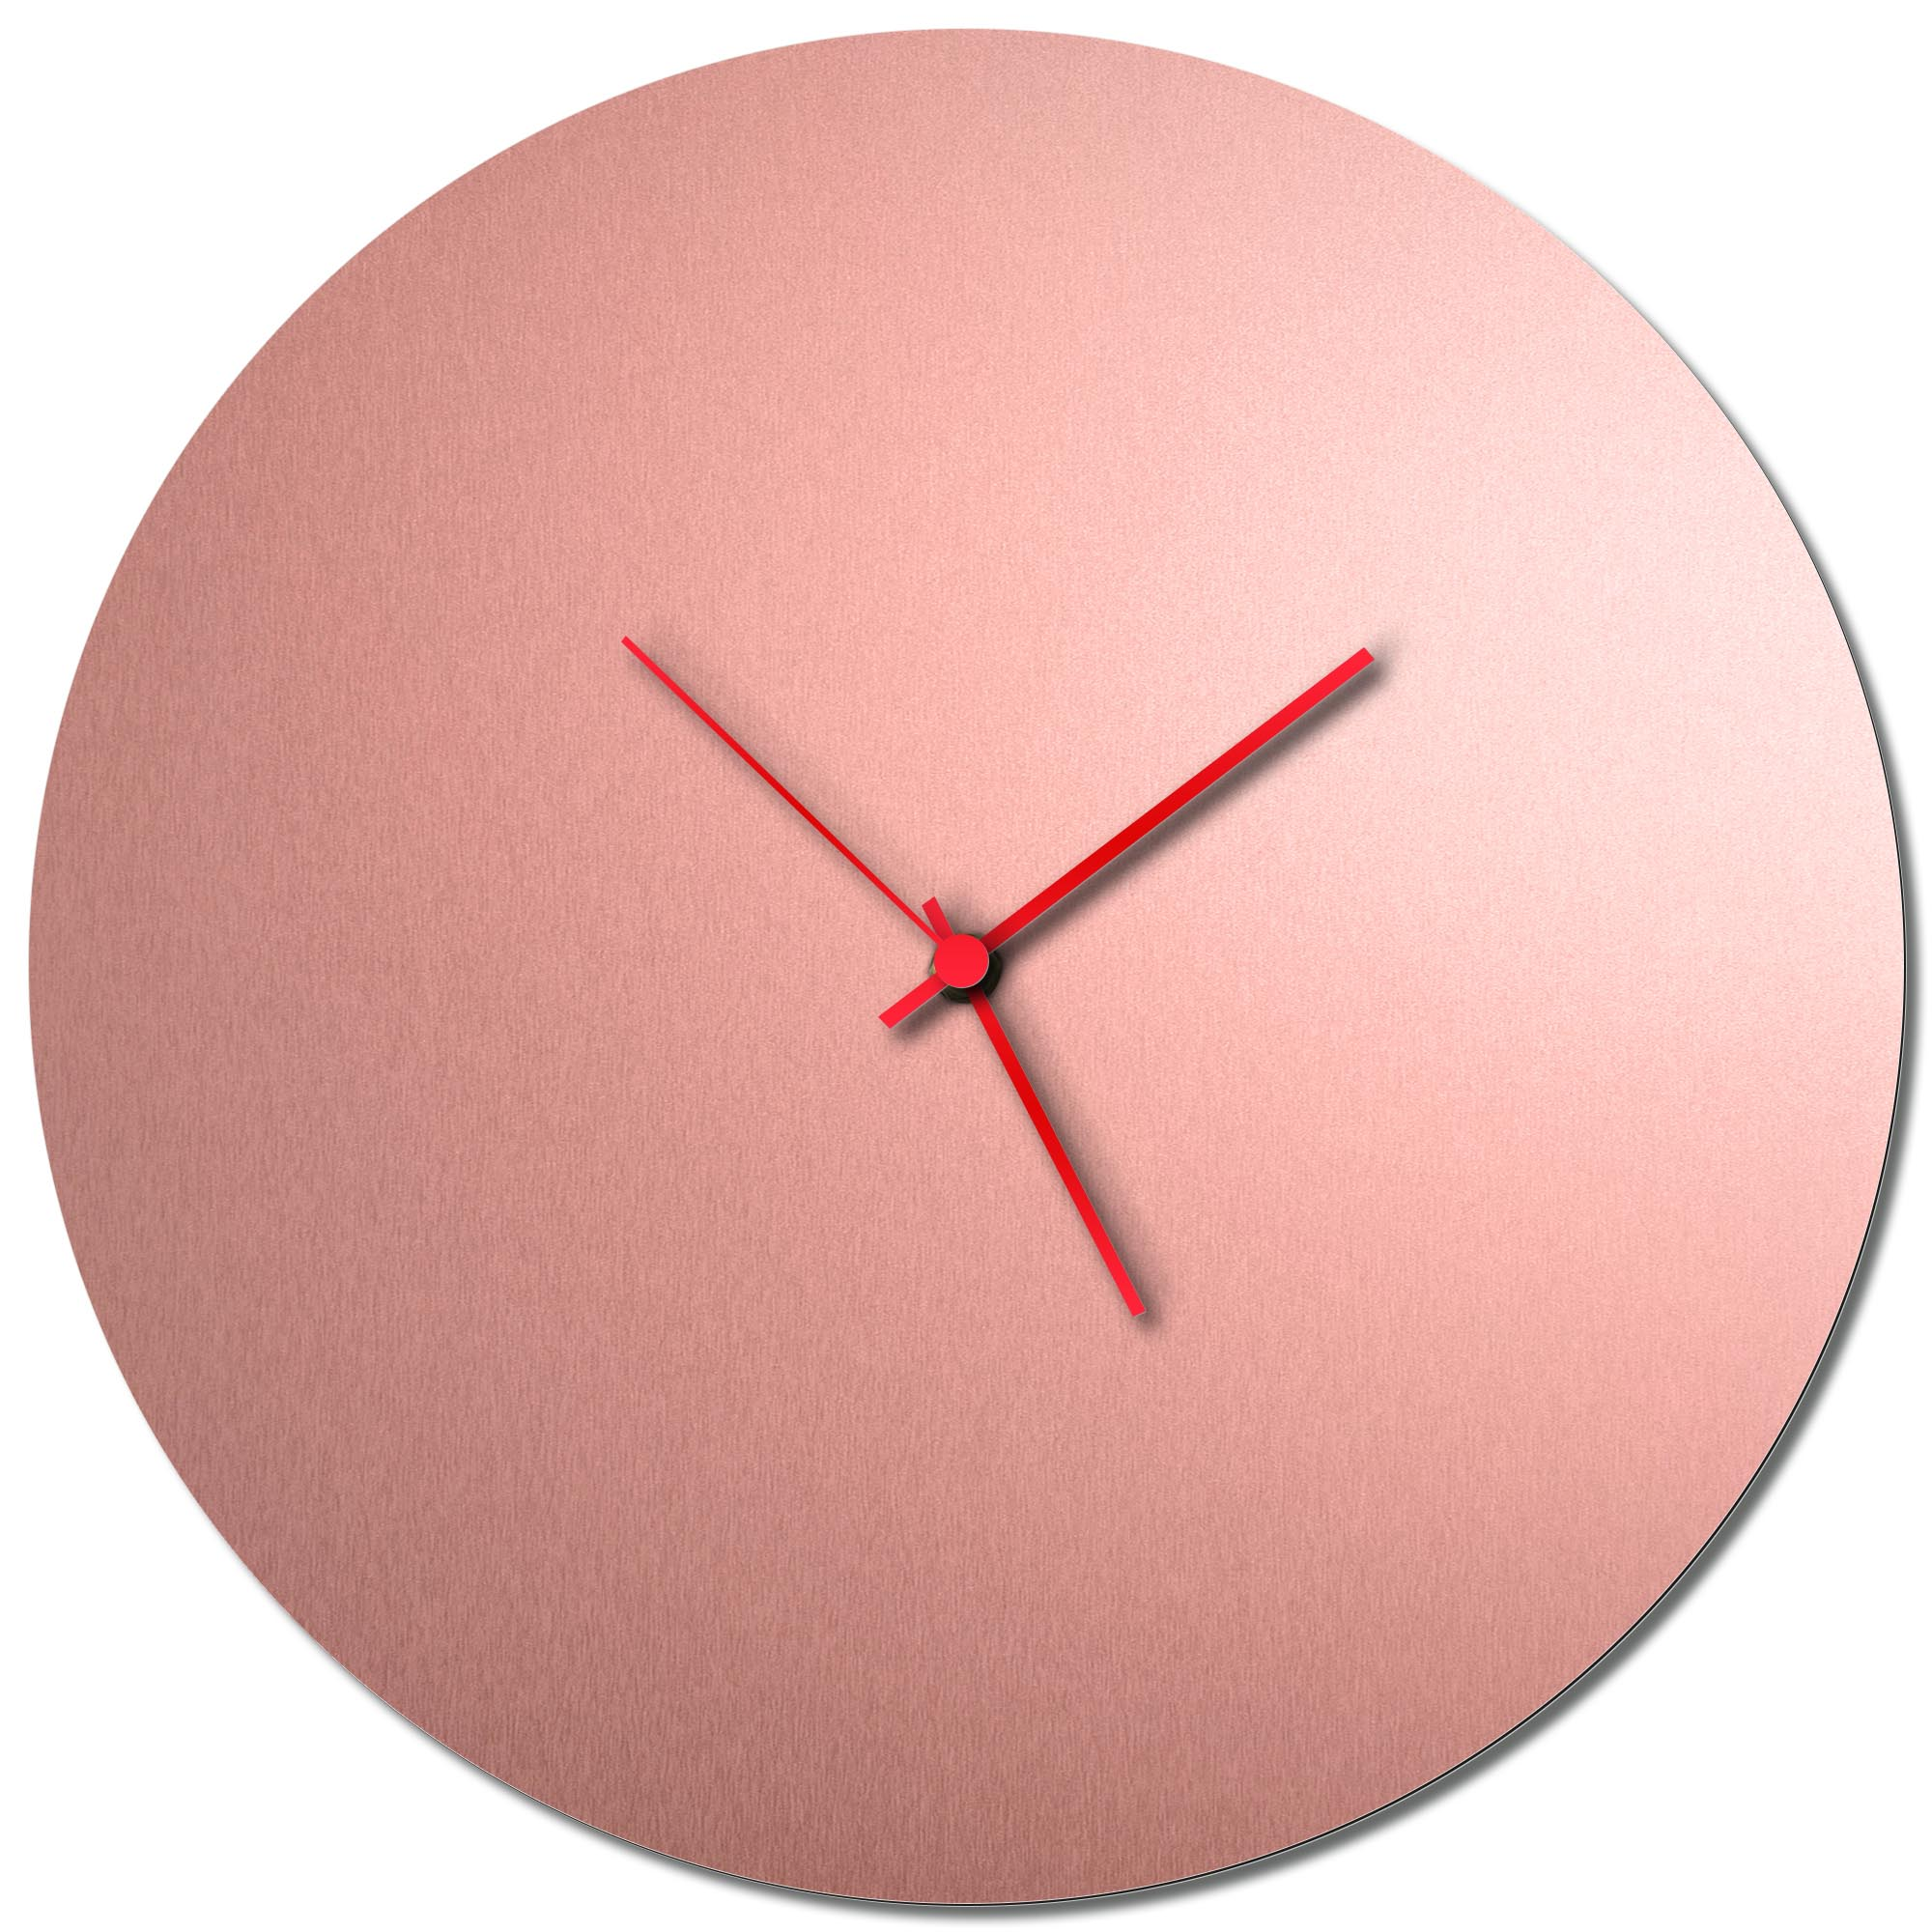 Adam Schwoeppe 'Coppersmith Circle Clock Large Red' Midcentury Modern Style Wall Clock